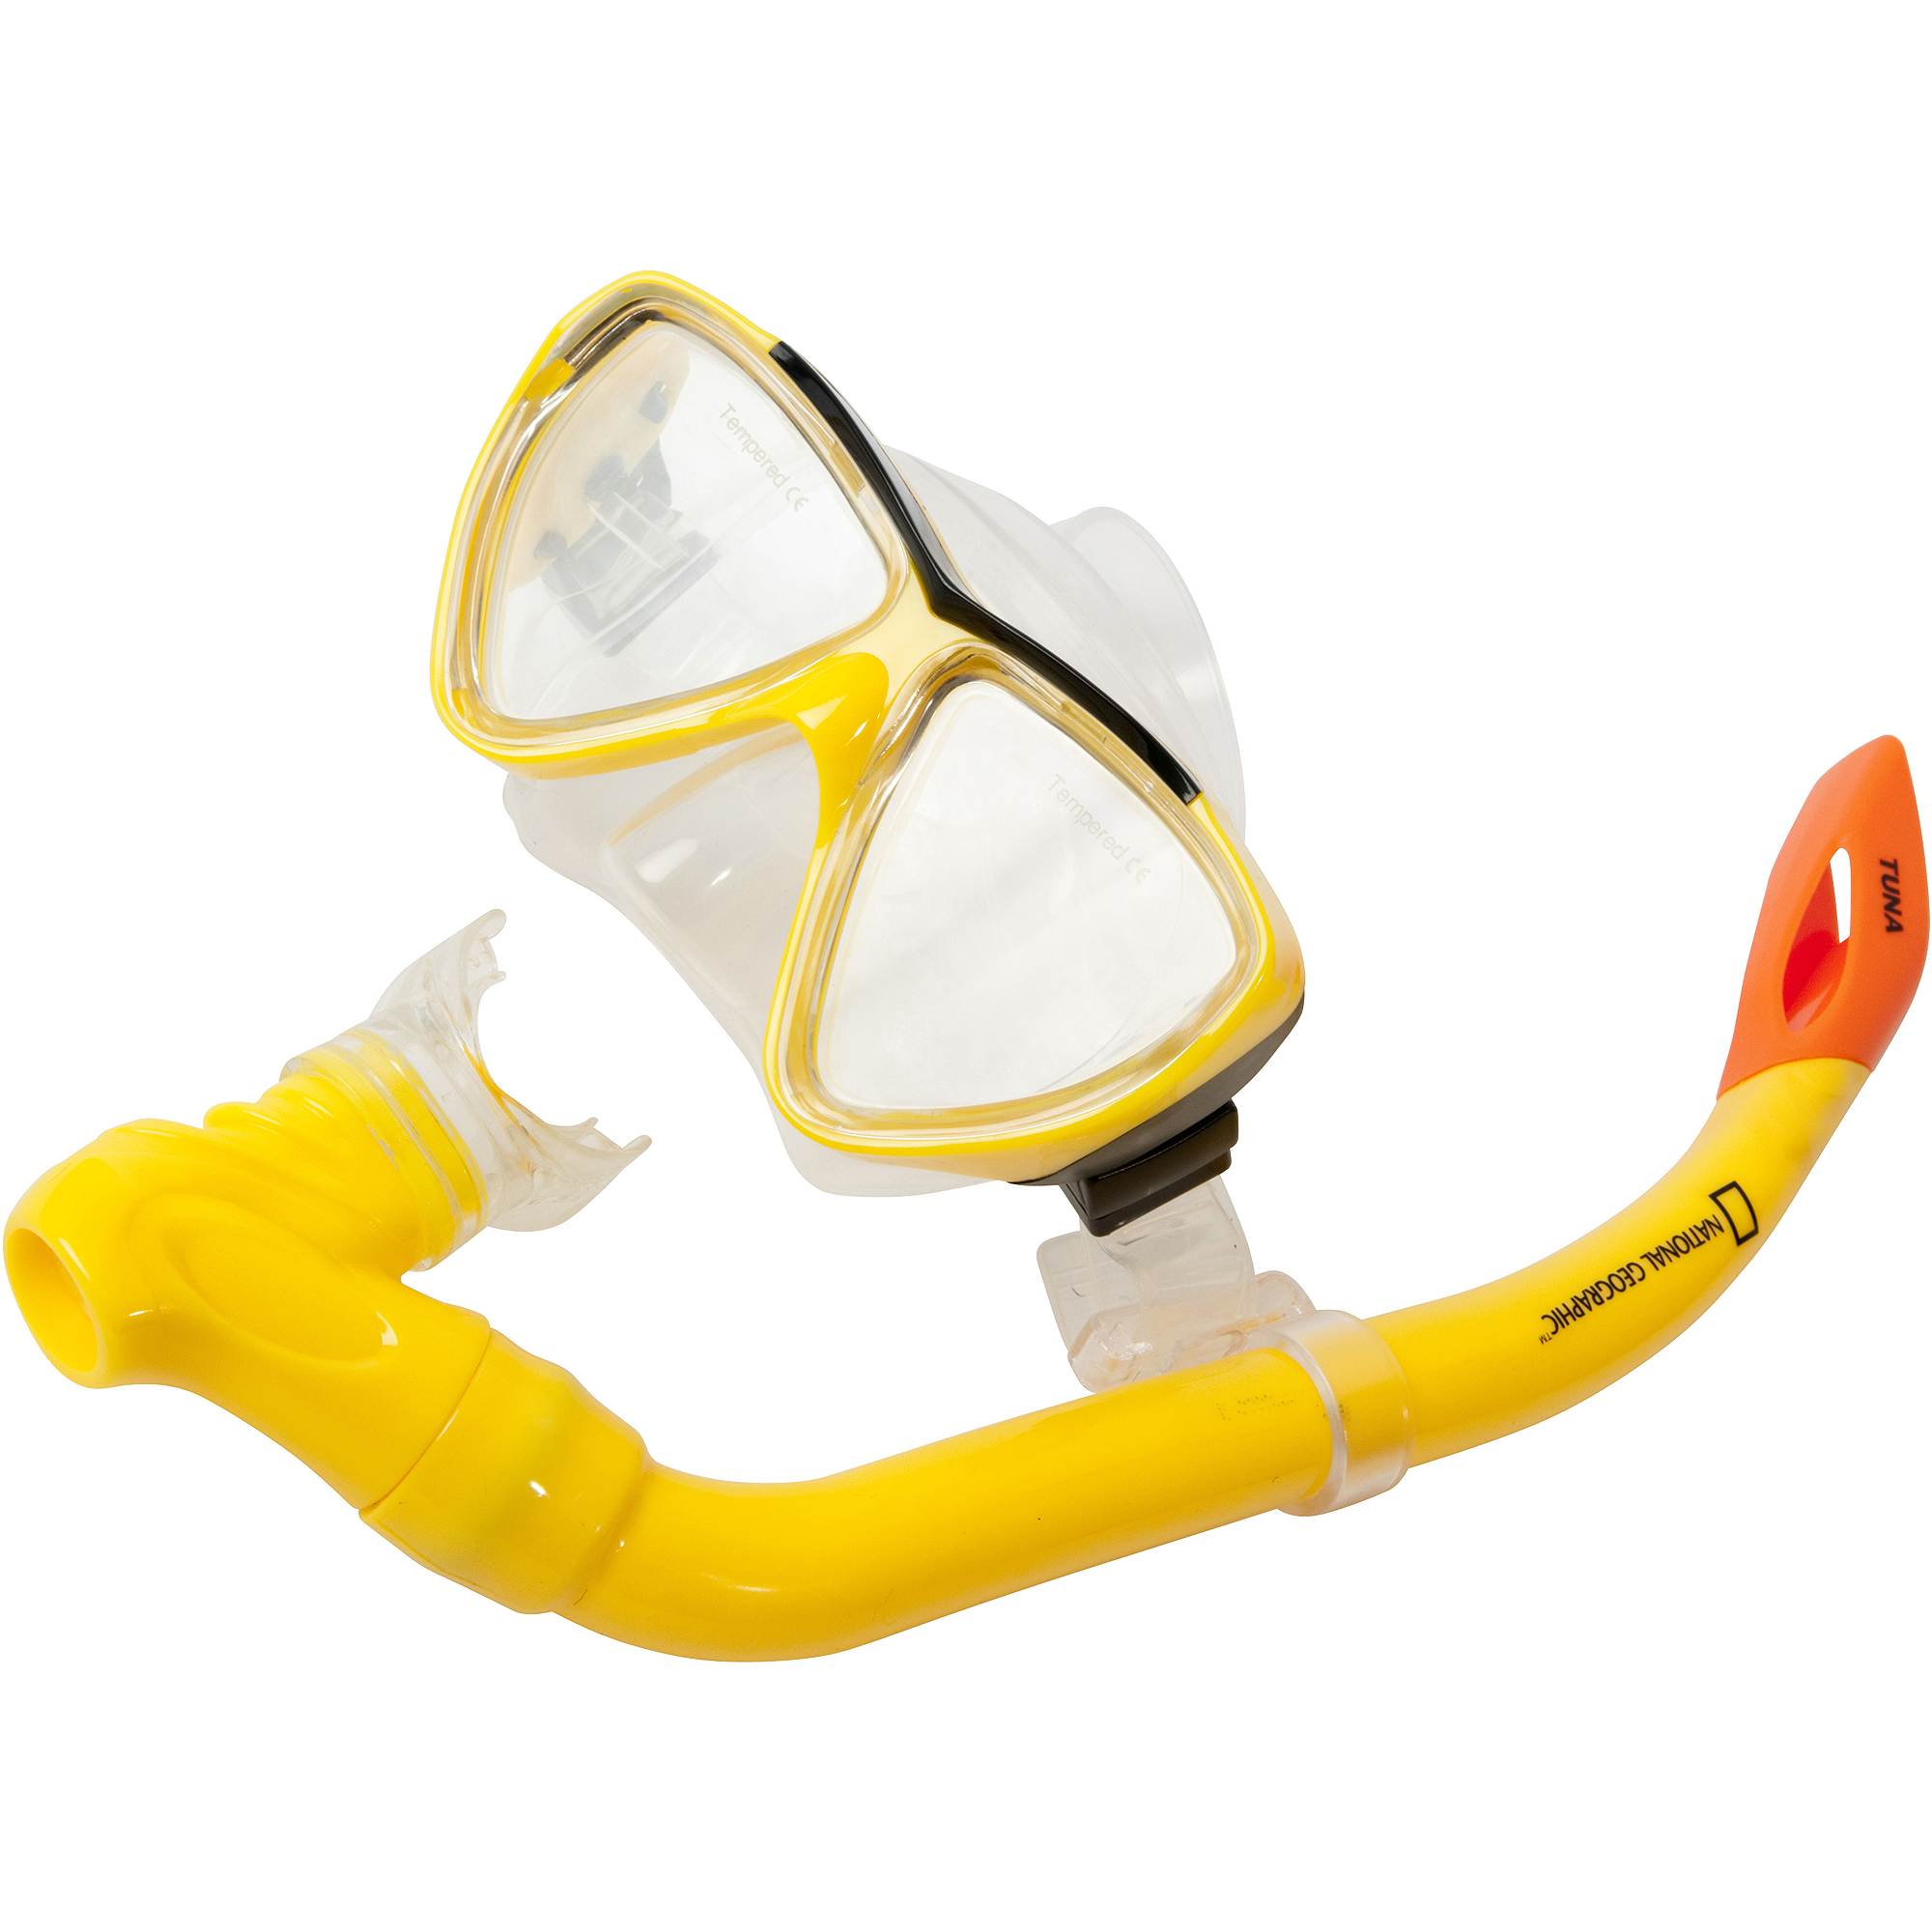 National Geographic Snorkeler Tunny 6S Combo